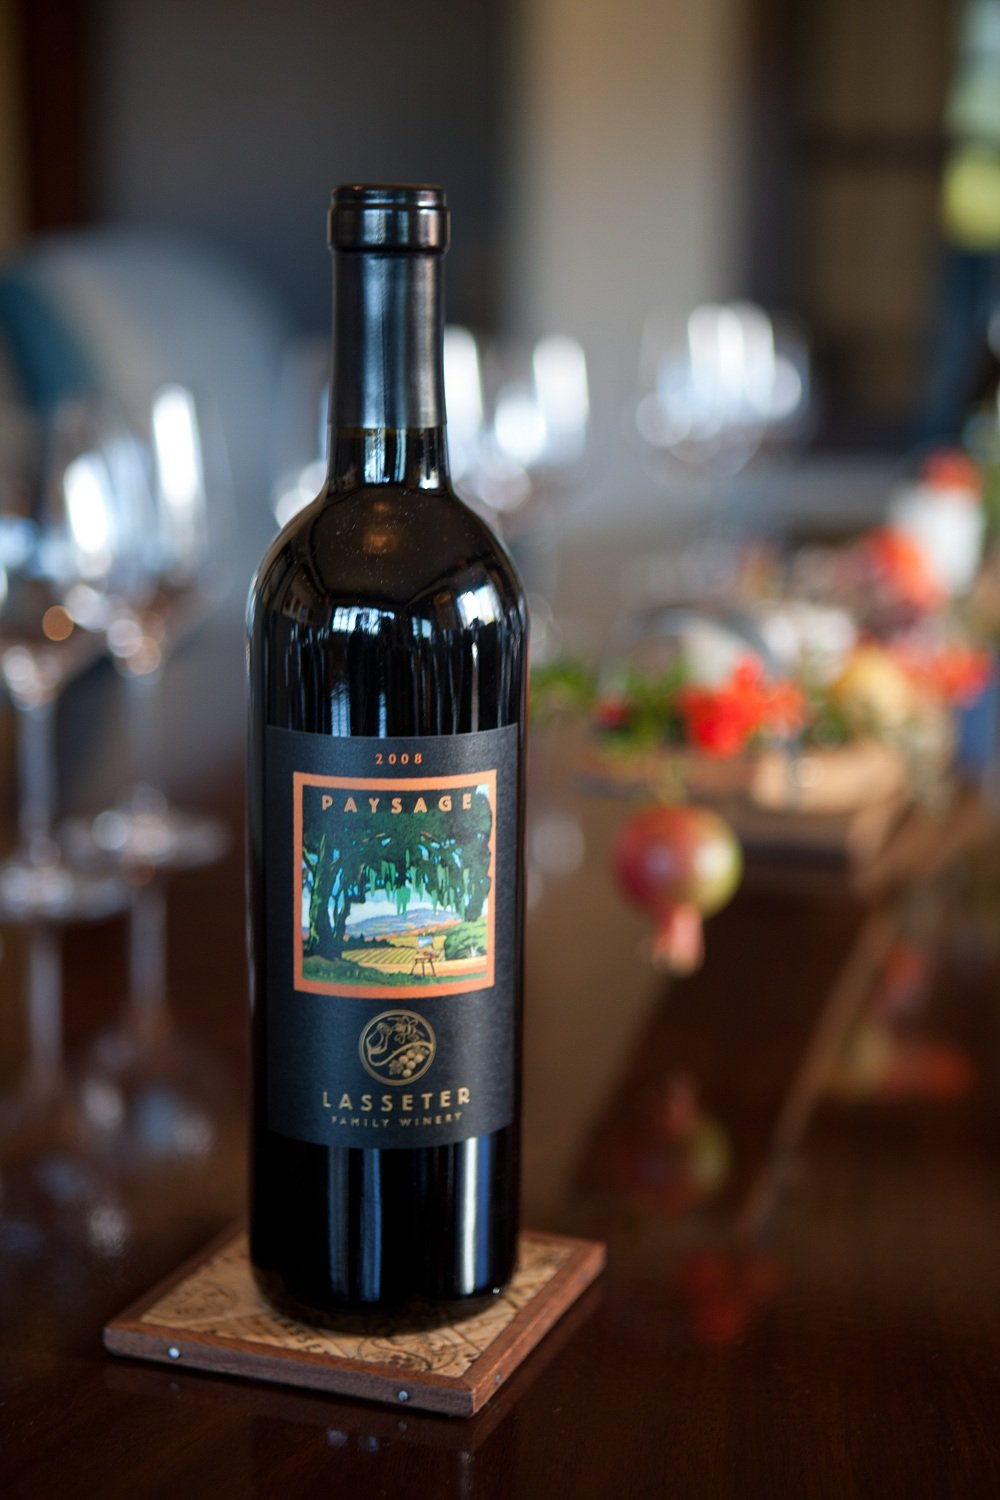 2009 Lasseter Family Winery Paysage